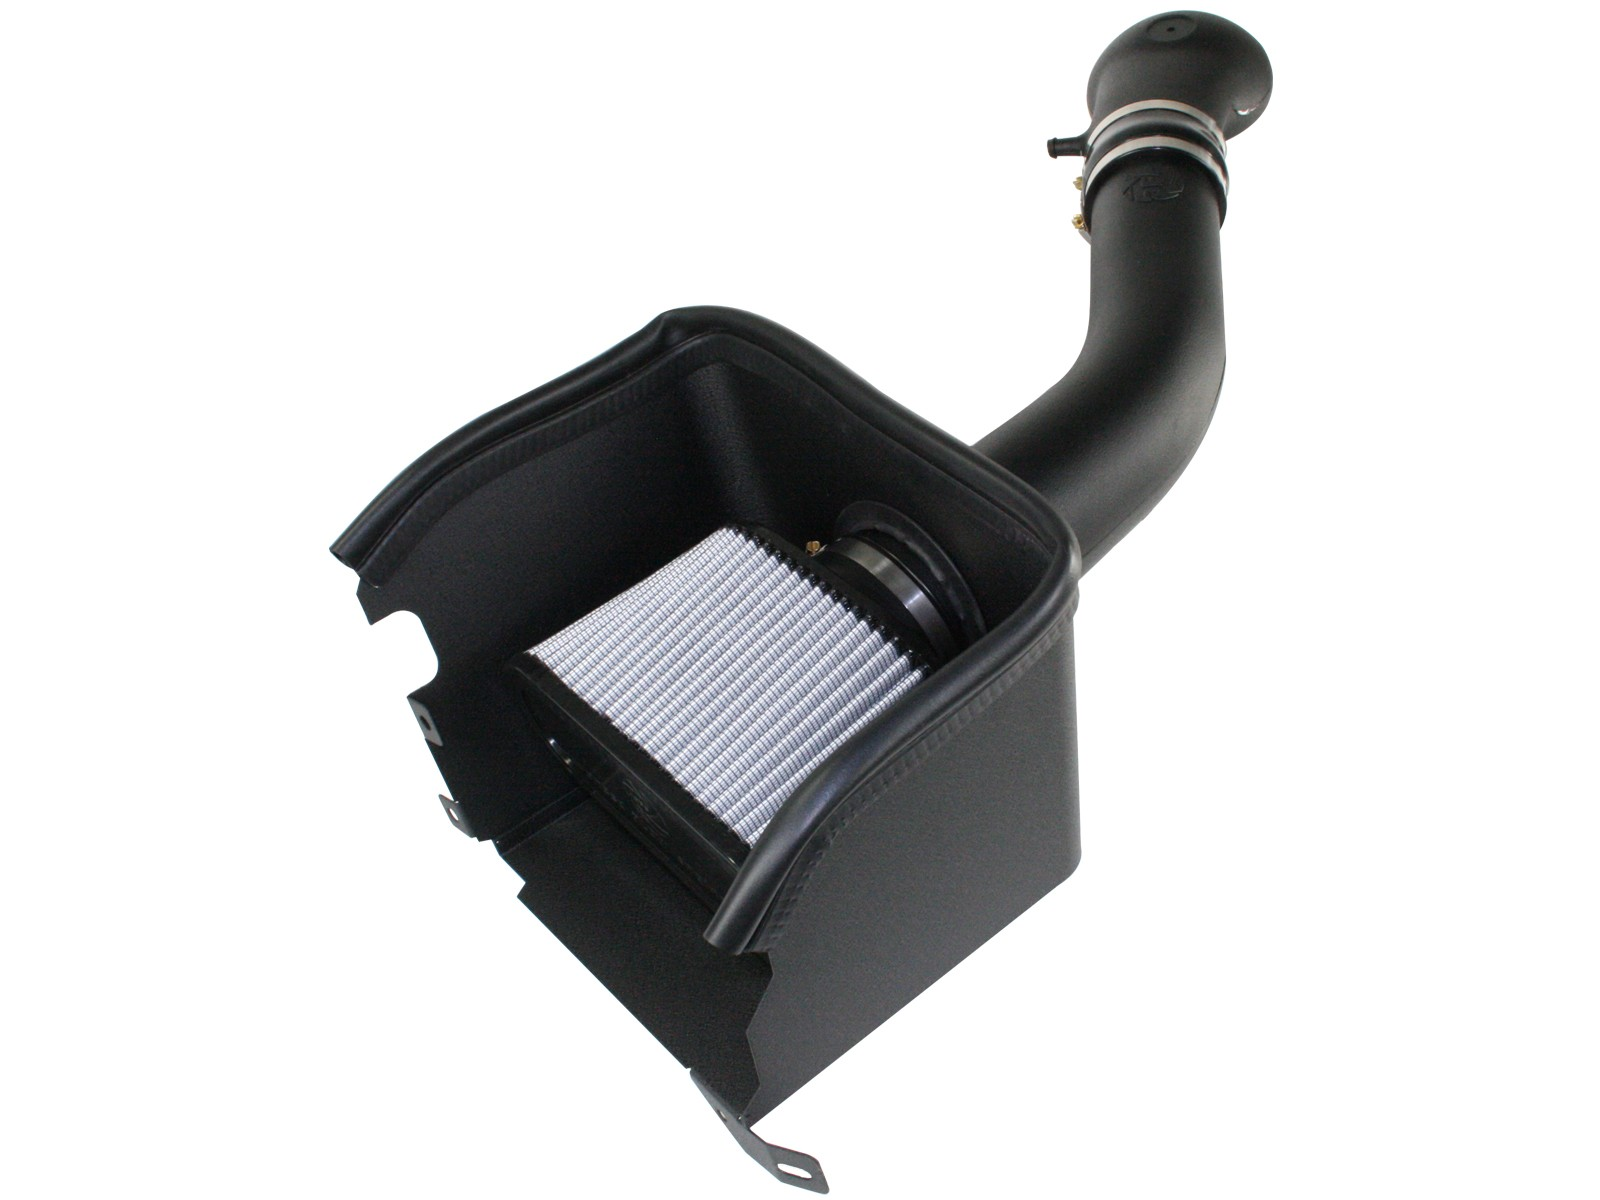 aFe POWER 51-10112 Magnum FORCE Stage-2 Pro DRY S Cold Air Intake System